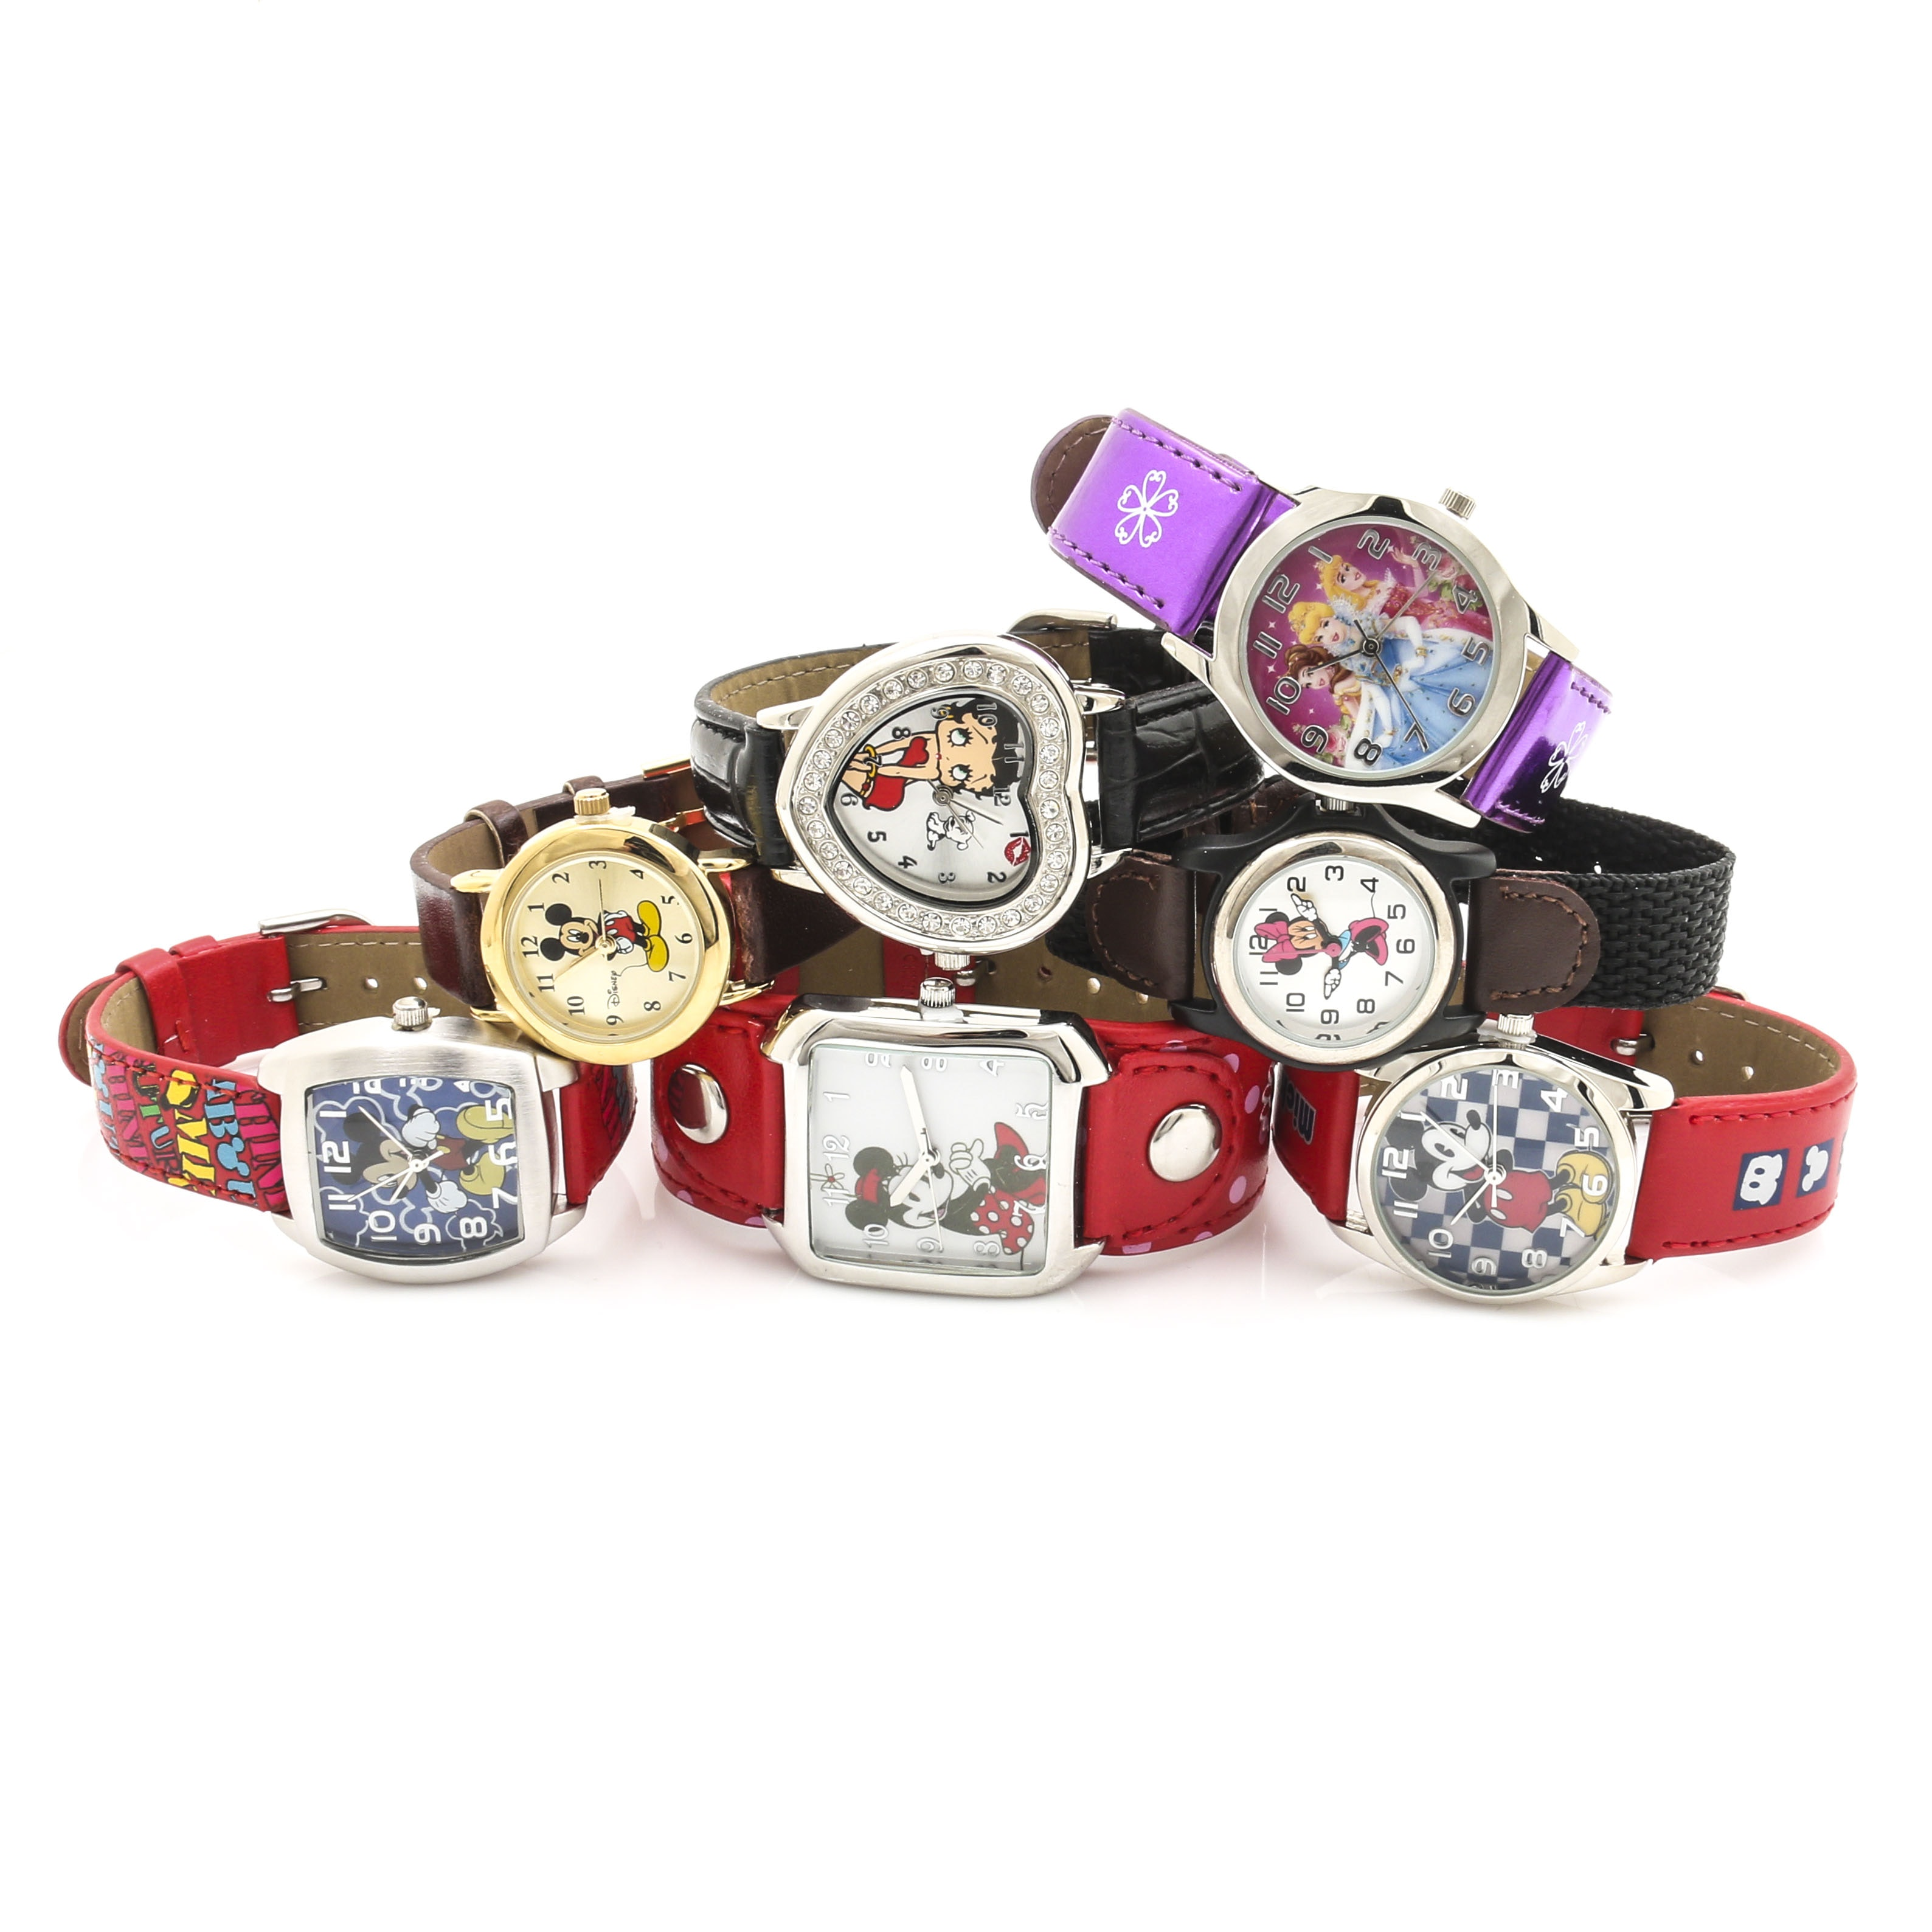 Assortment of Character Wristwatches Featuring Disney